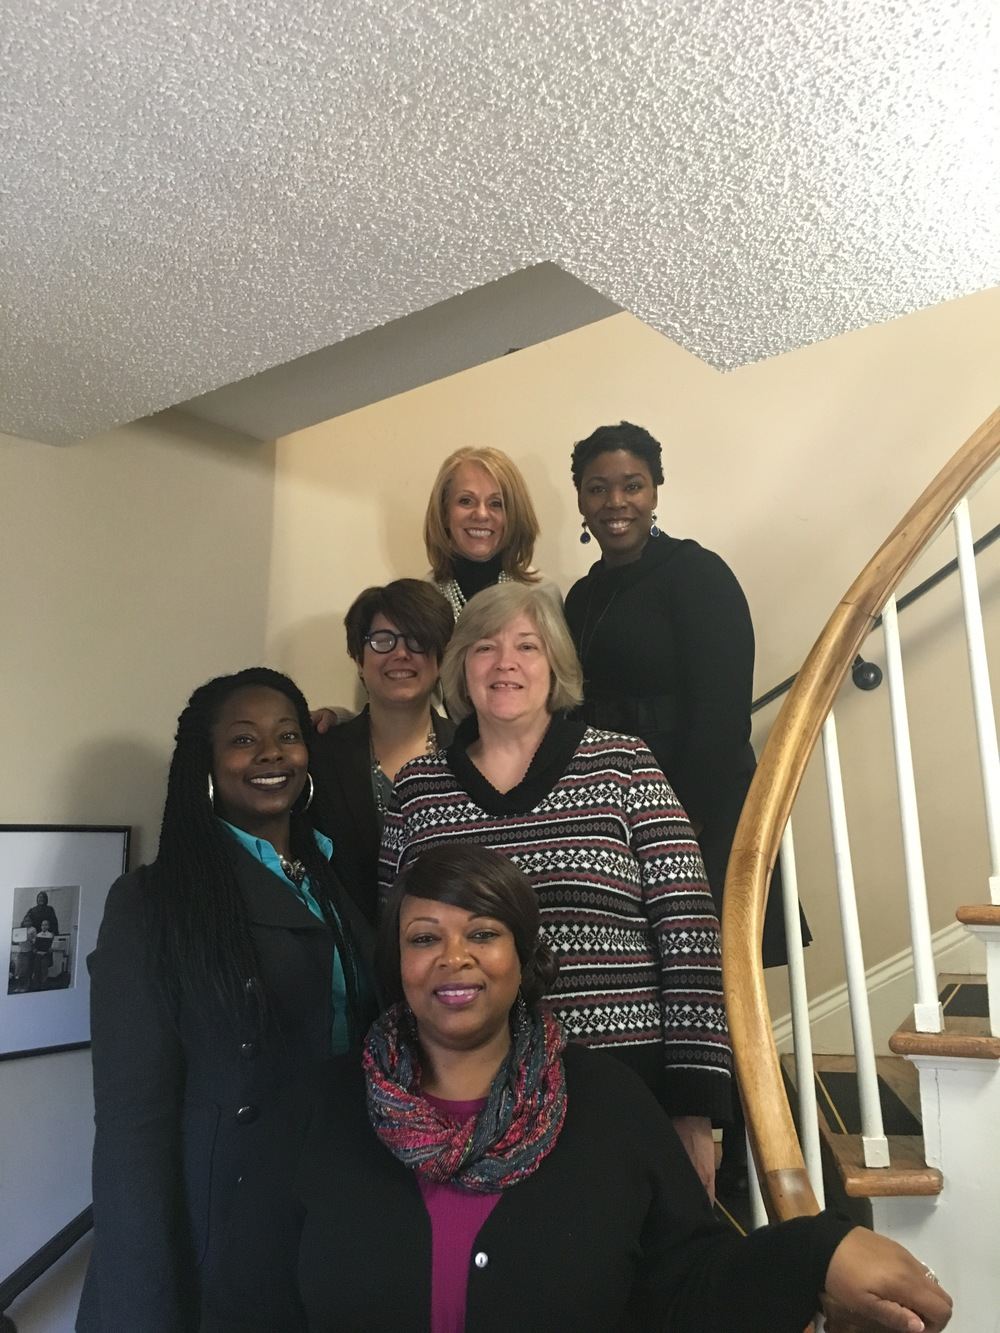 In order from bottom to top: Angela Coleman, Melissa Wilkerson, Mary Roberts, Laura Martin, Linda Nunnallee, Colisha Gilbert.